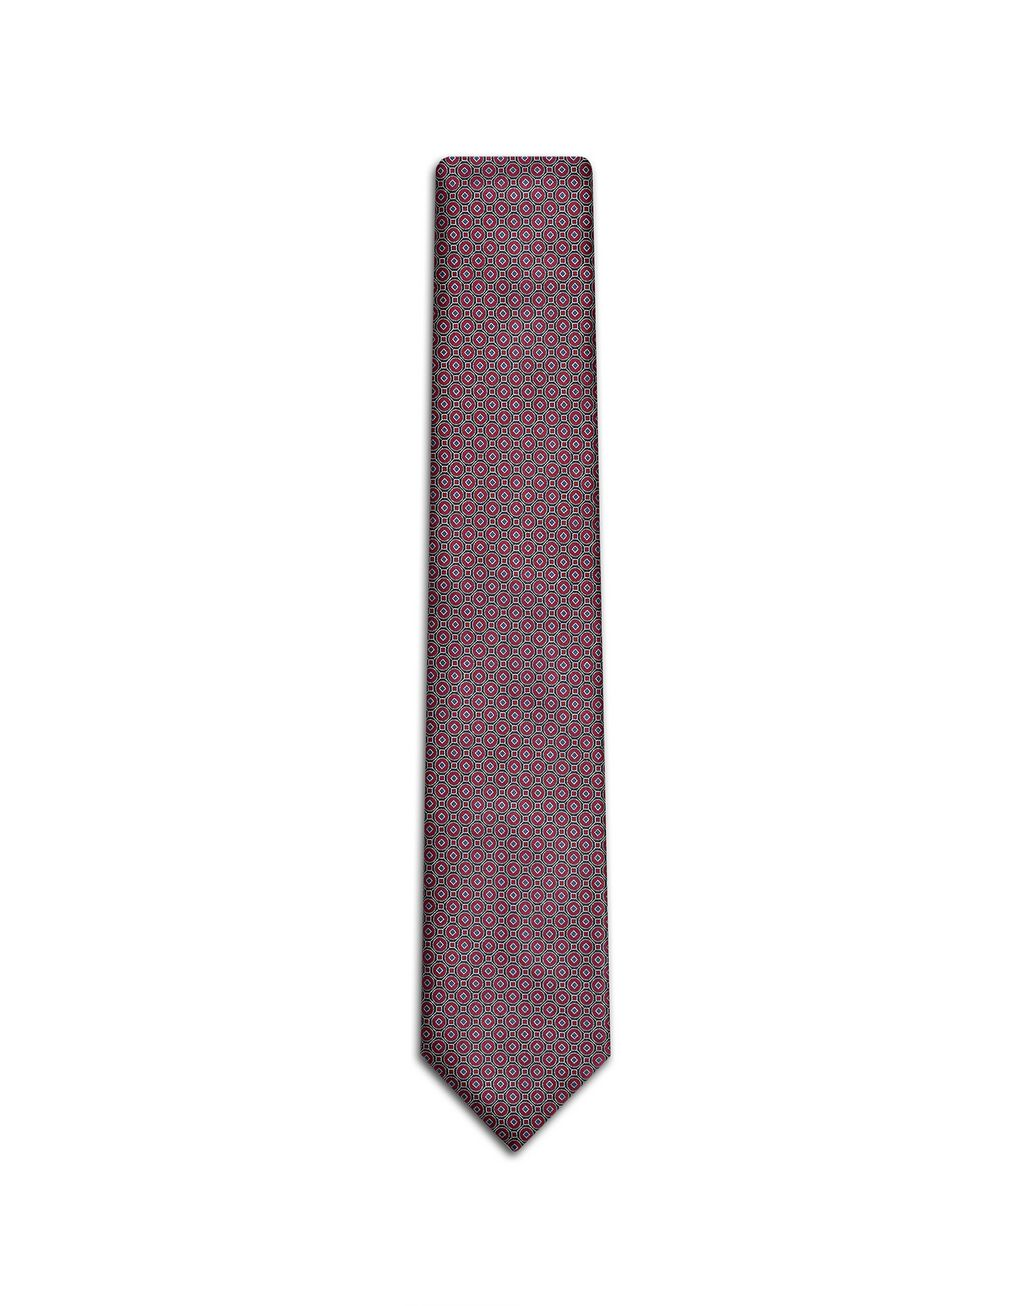 BRIONI Cravate bordeaux à large motif Cravate Homme f